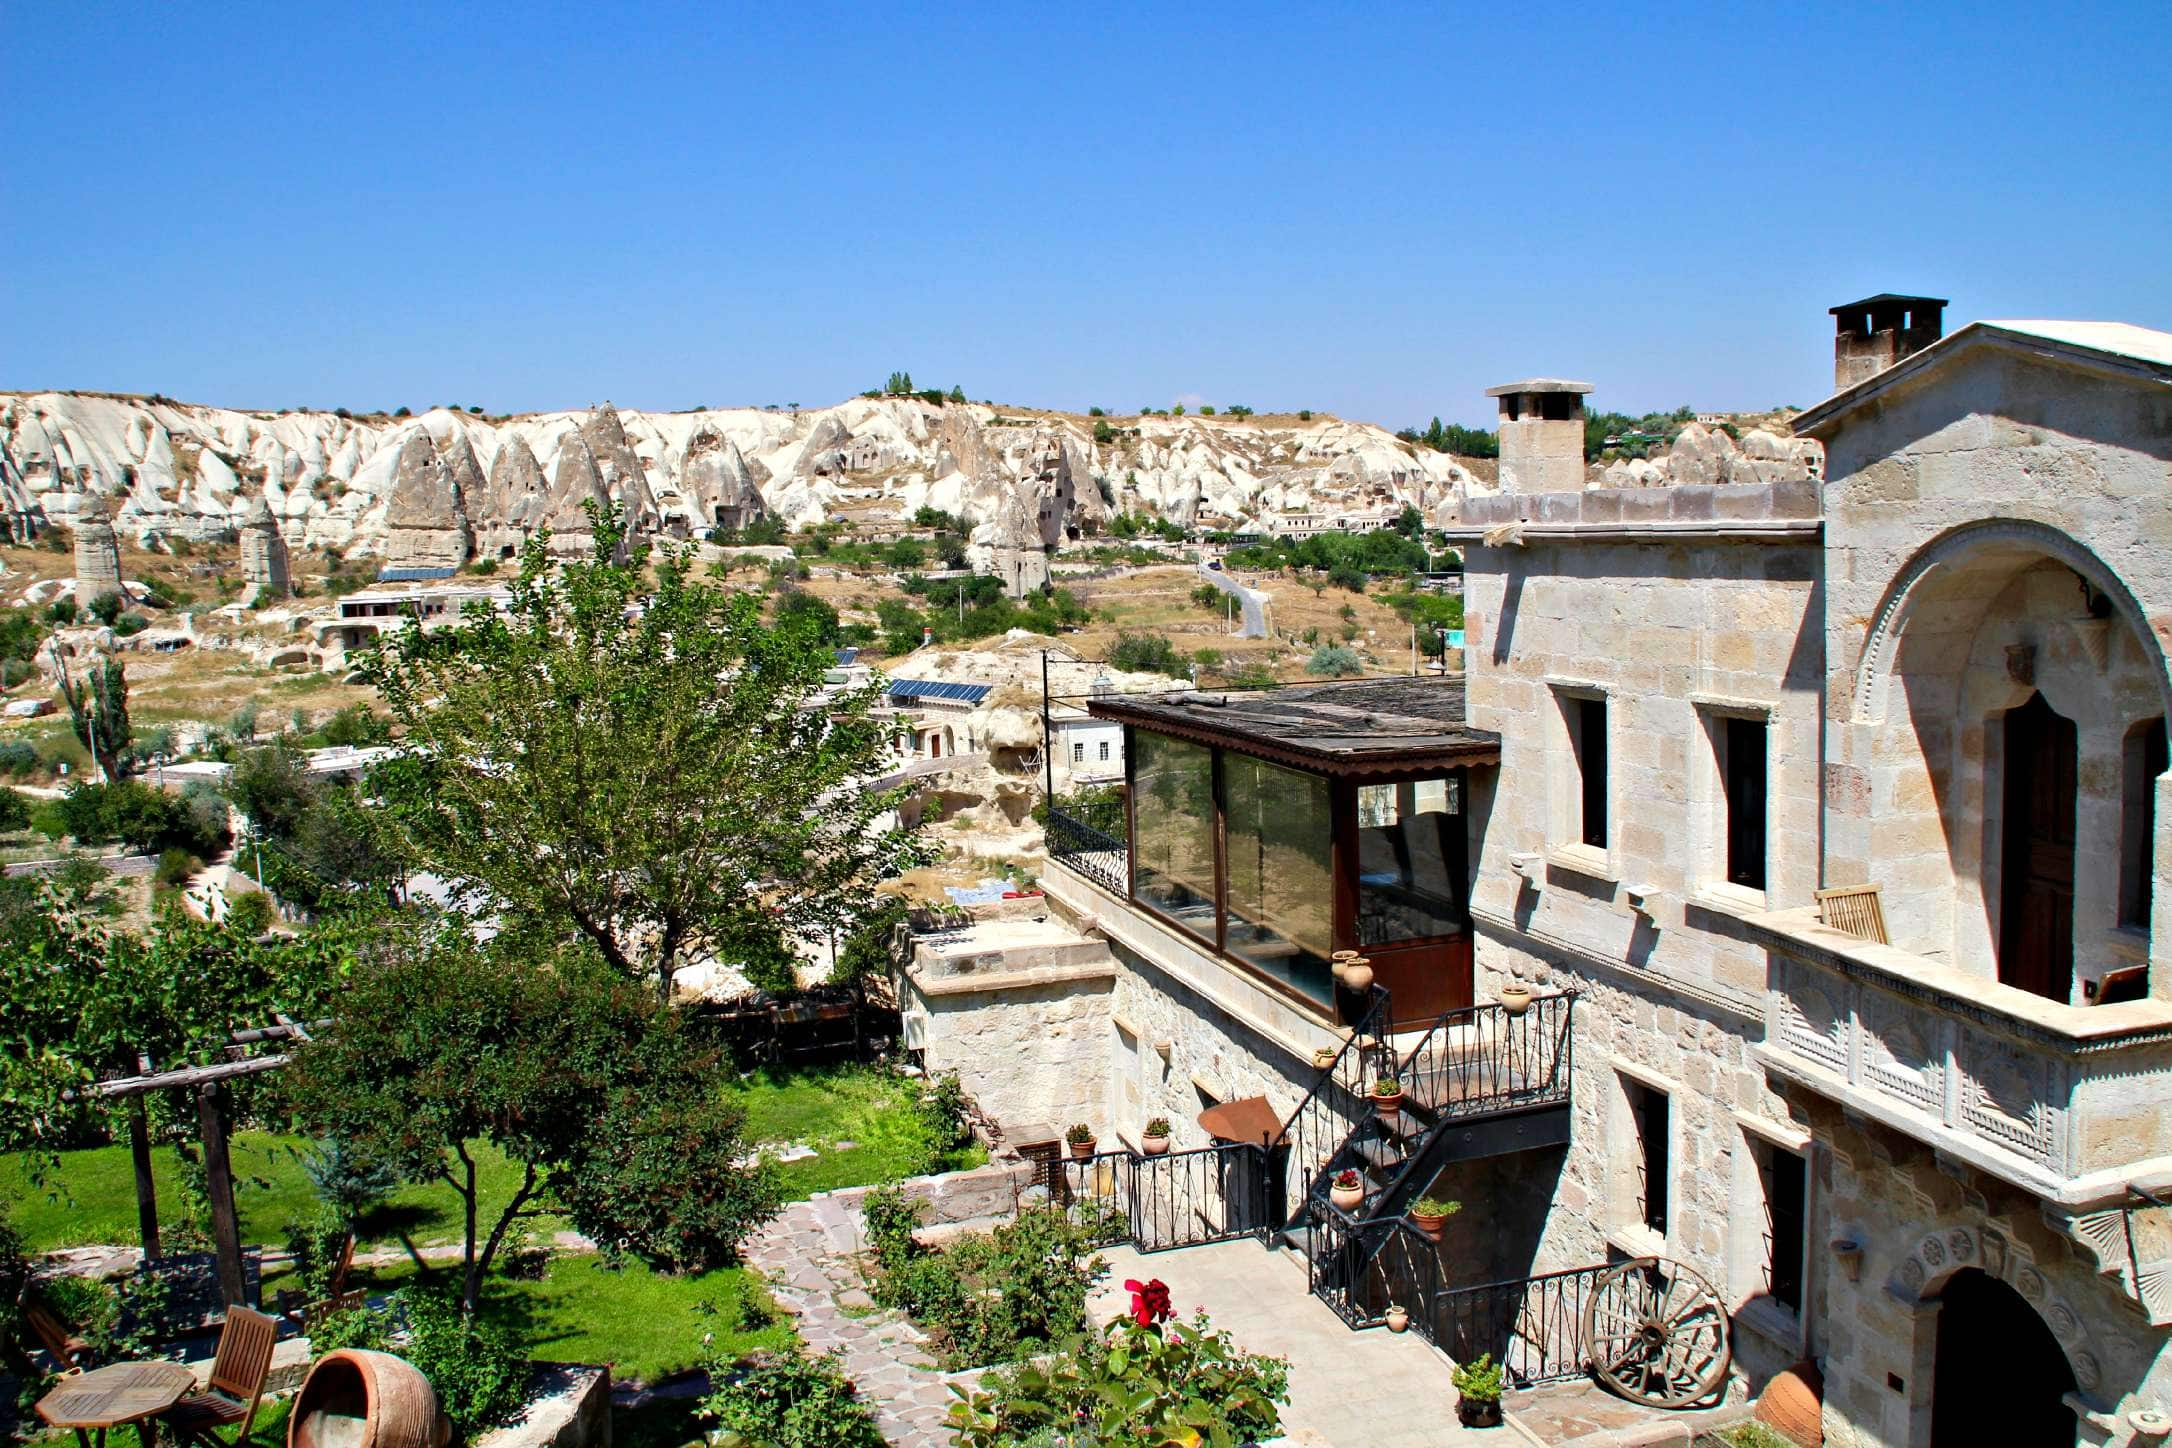 Kelebek Special Cave Hotel: Sleep in a Cave with Class in Cappadocia